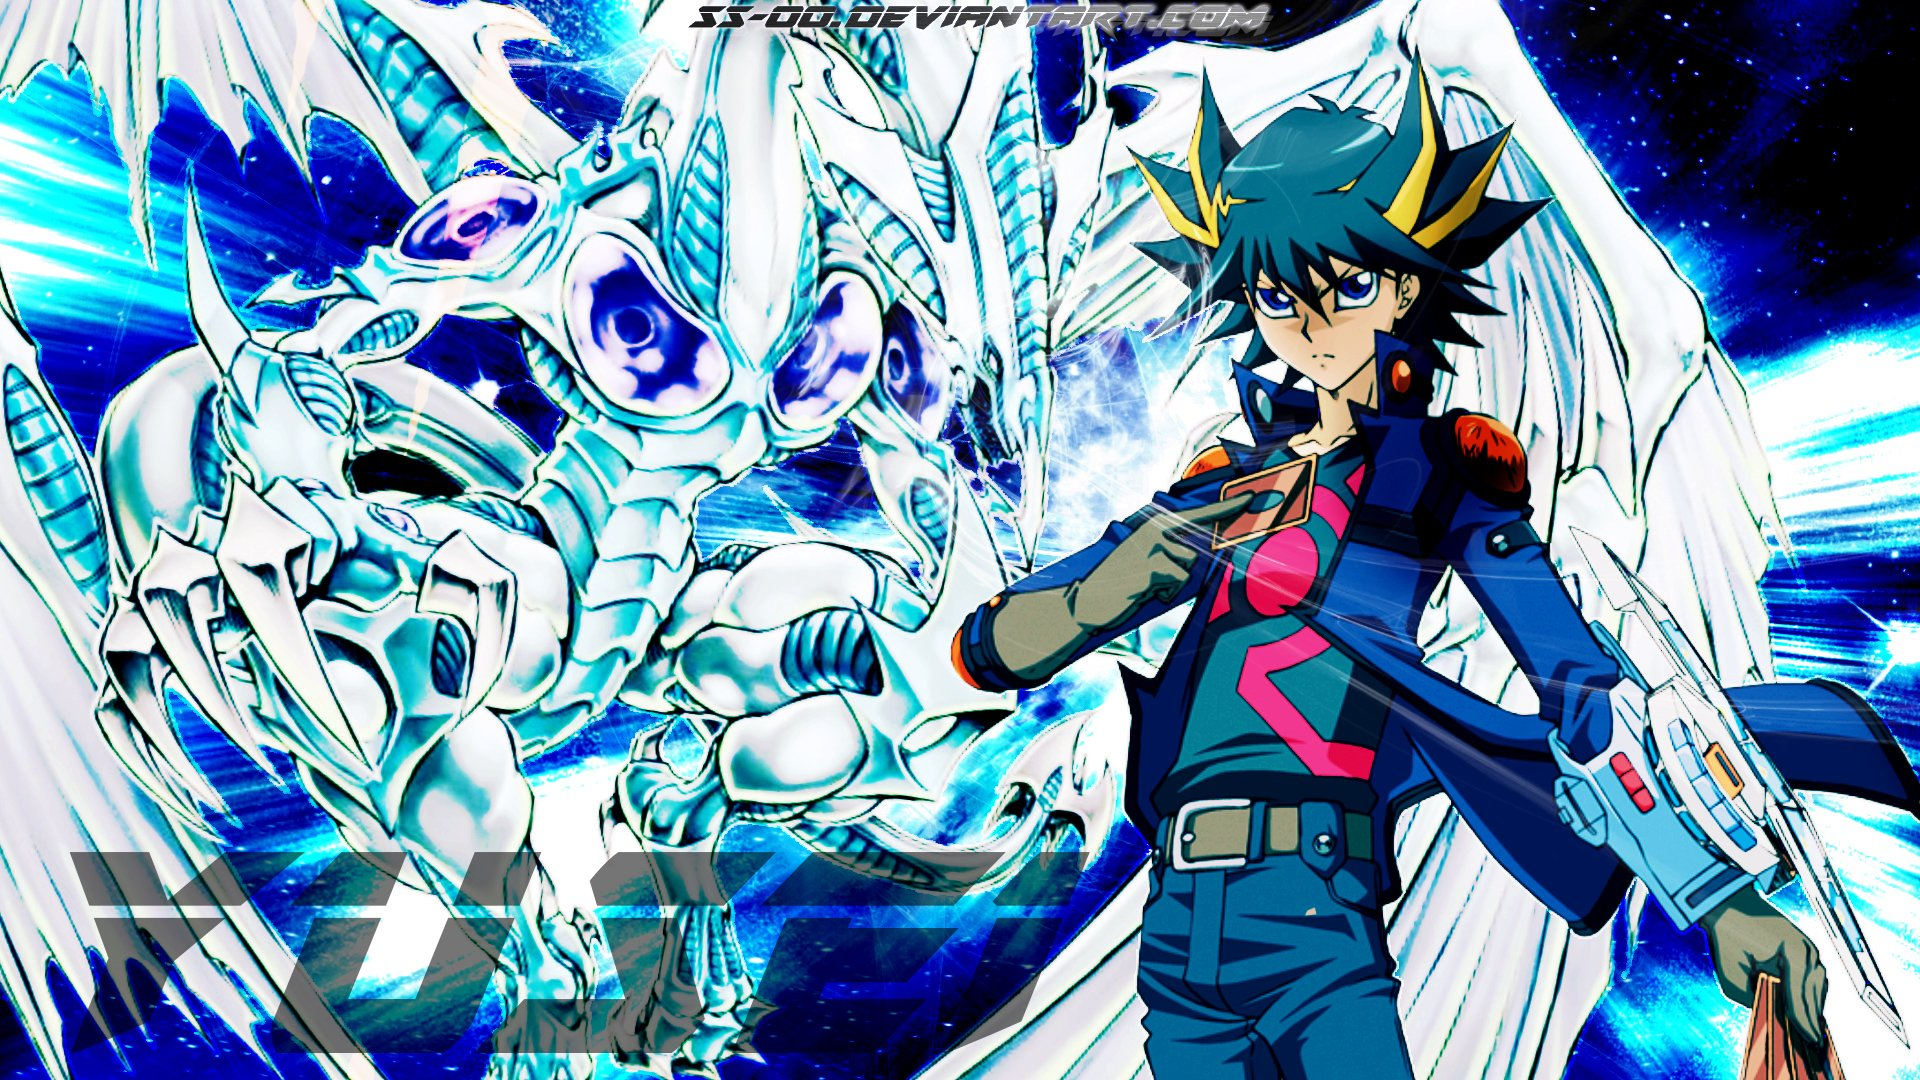 Yu Gi Oh 5d S Wallpapers 52 Wallpapers Hd Wallpapers HD Wallpapers Download Free Images Wallpaper [1000image.com]